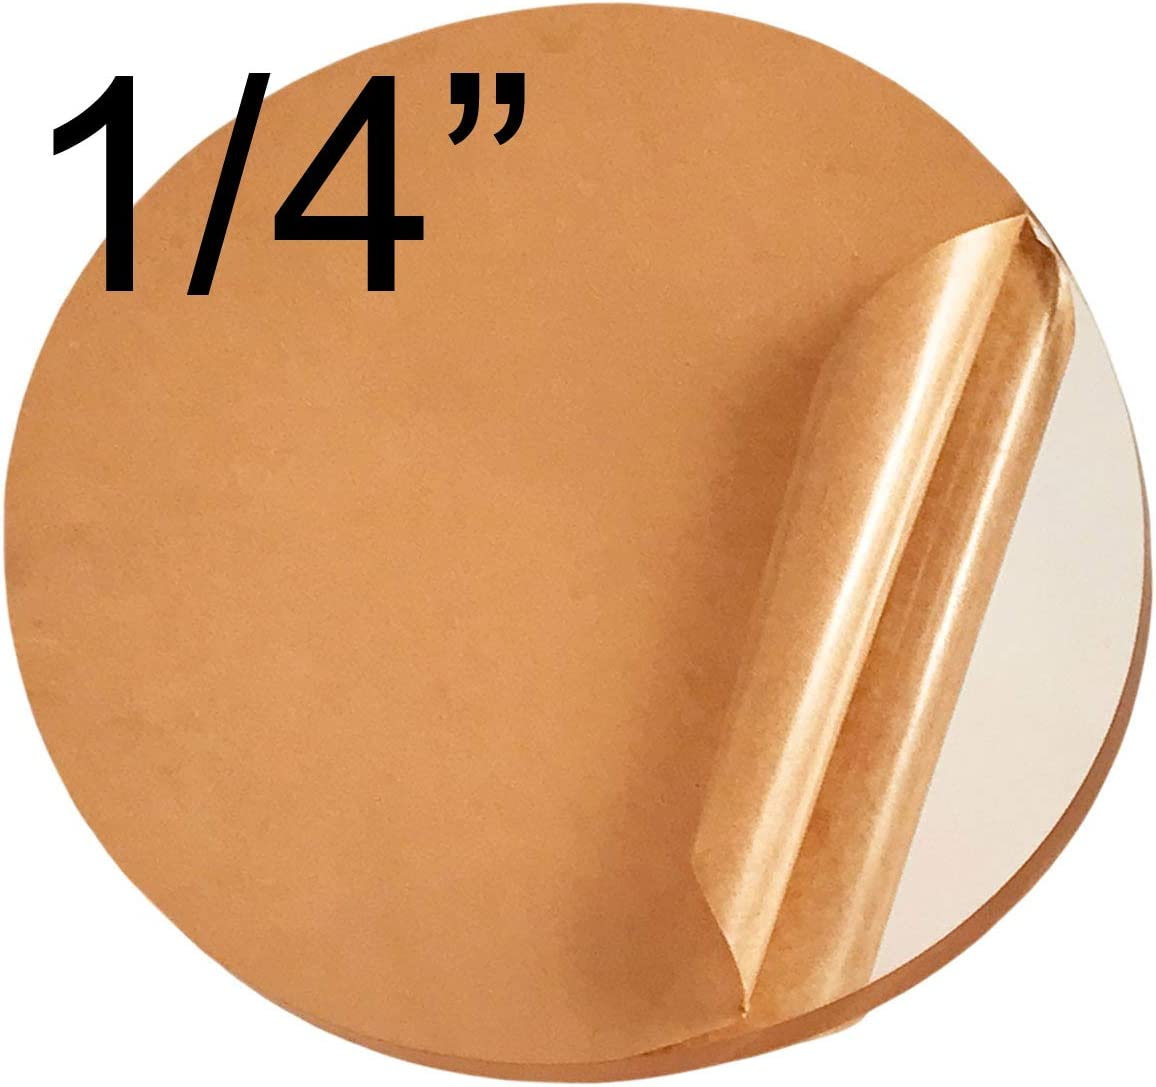 25 Pcs of 1//8 0.118 Thick x 2.50 2 1//2 Diameter Acrylic Circle Disc Clear